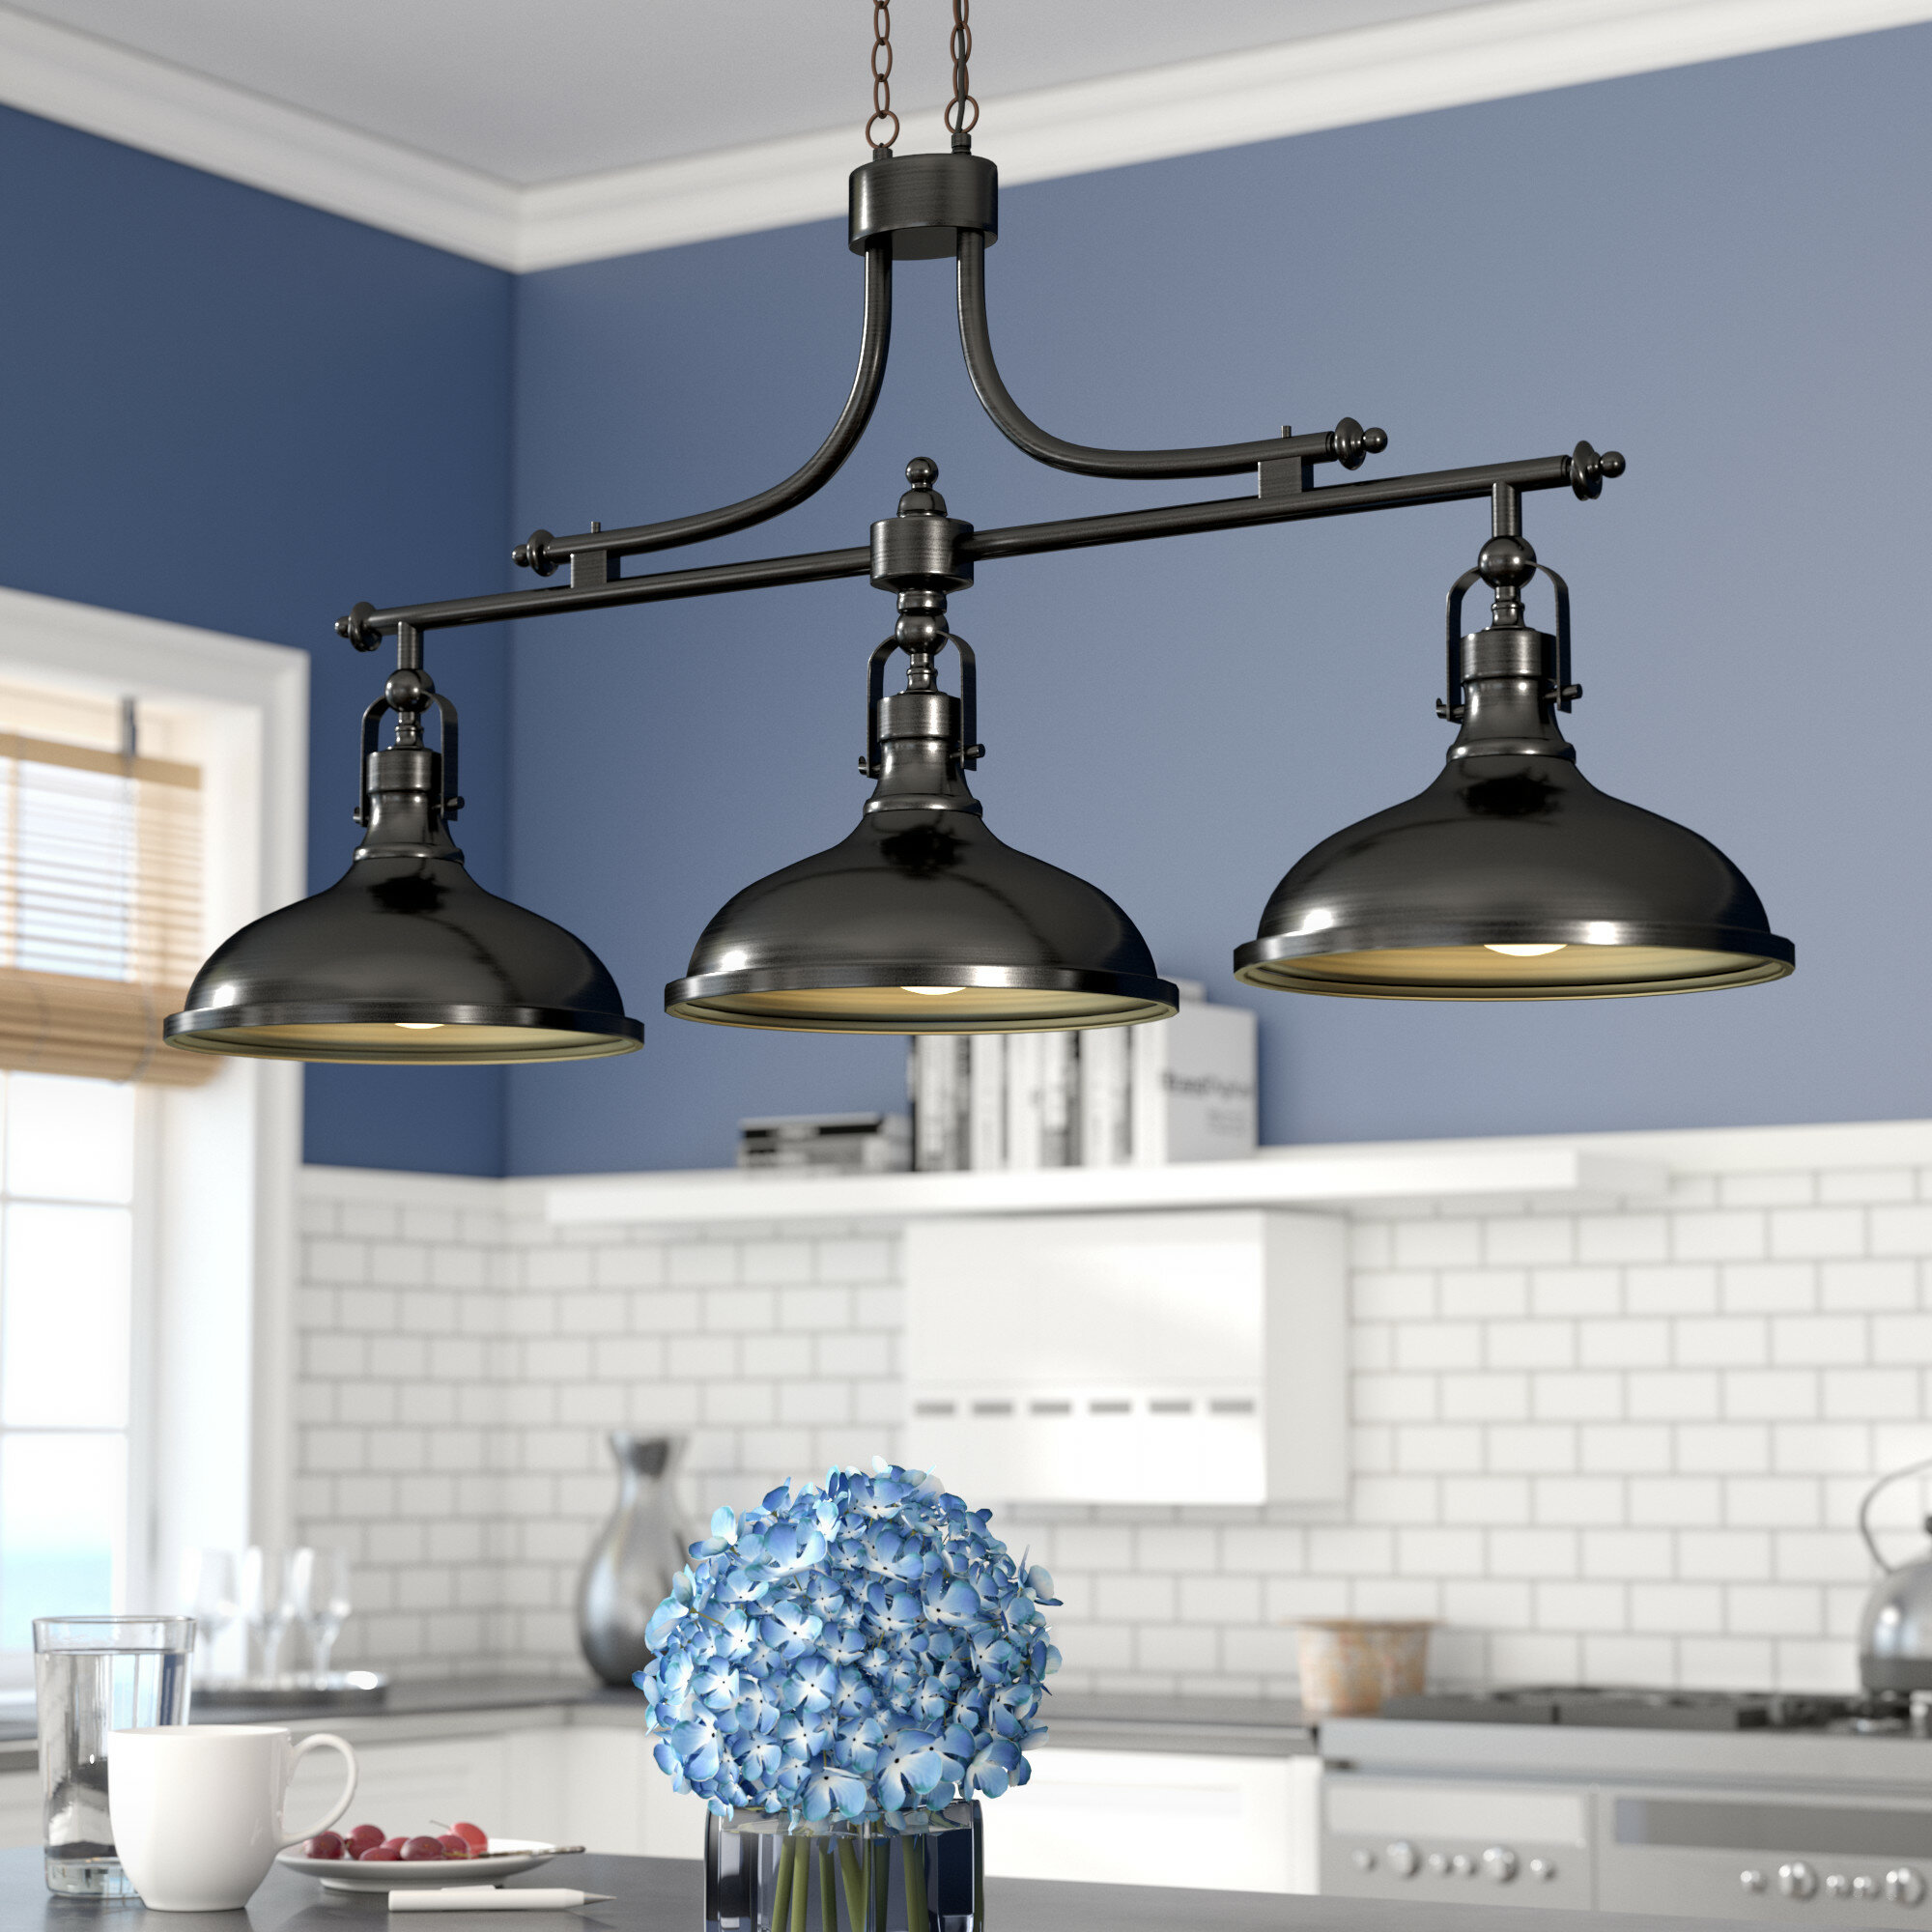 Martinique 3 light kitchen island dome pendant